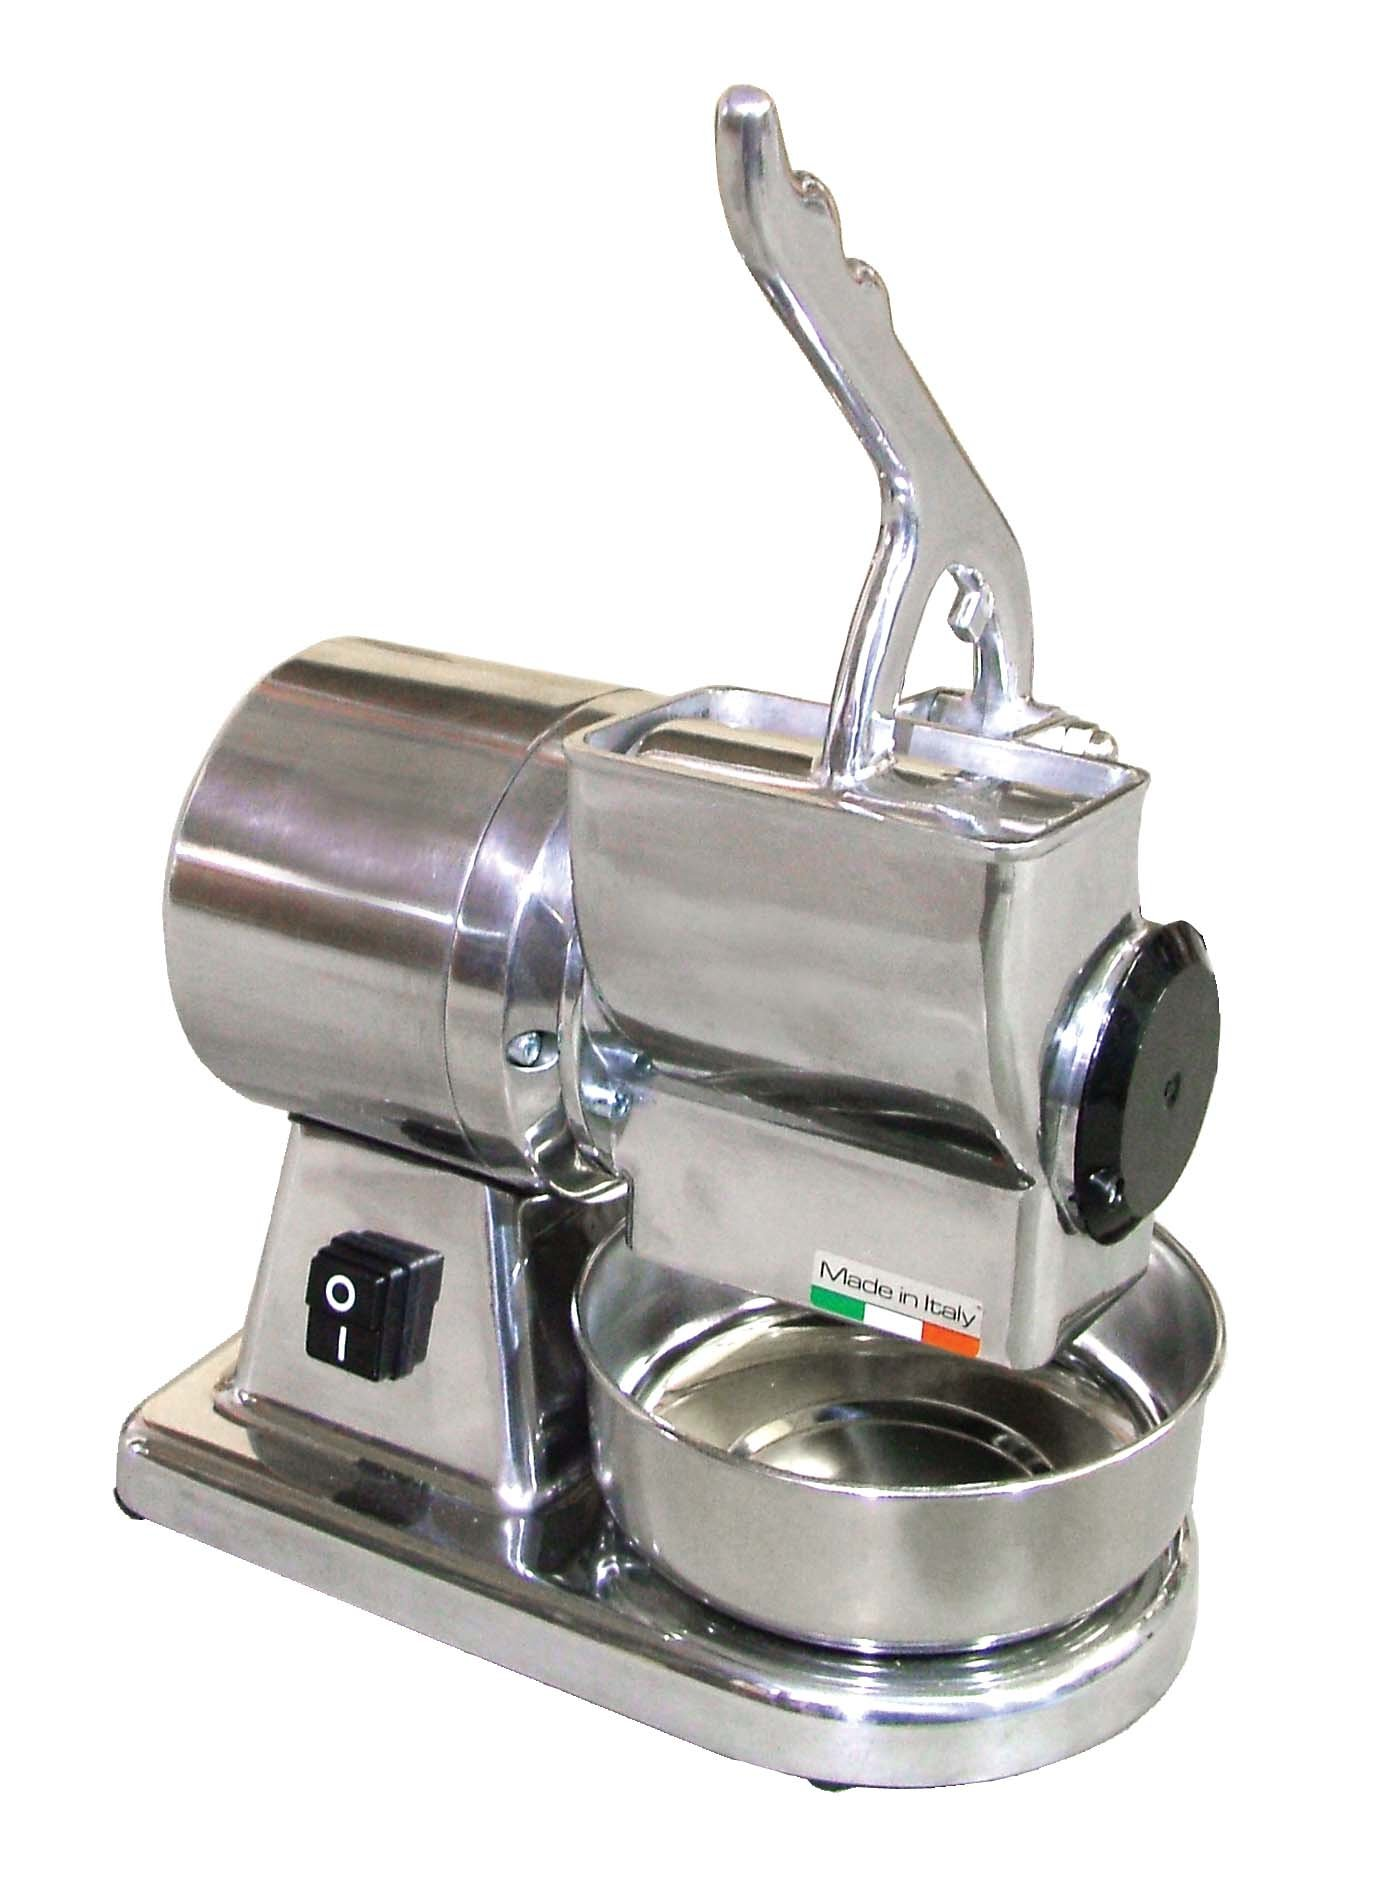 Omcan 11401 Commercial Restaurant Italian Stainless Steel Cheese Grater .5 HP